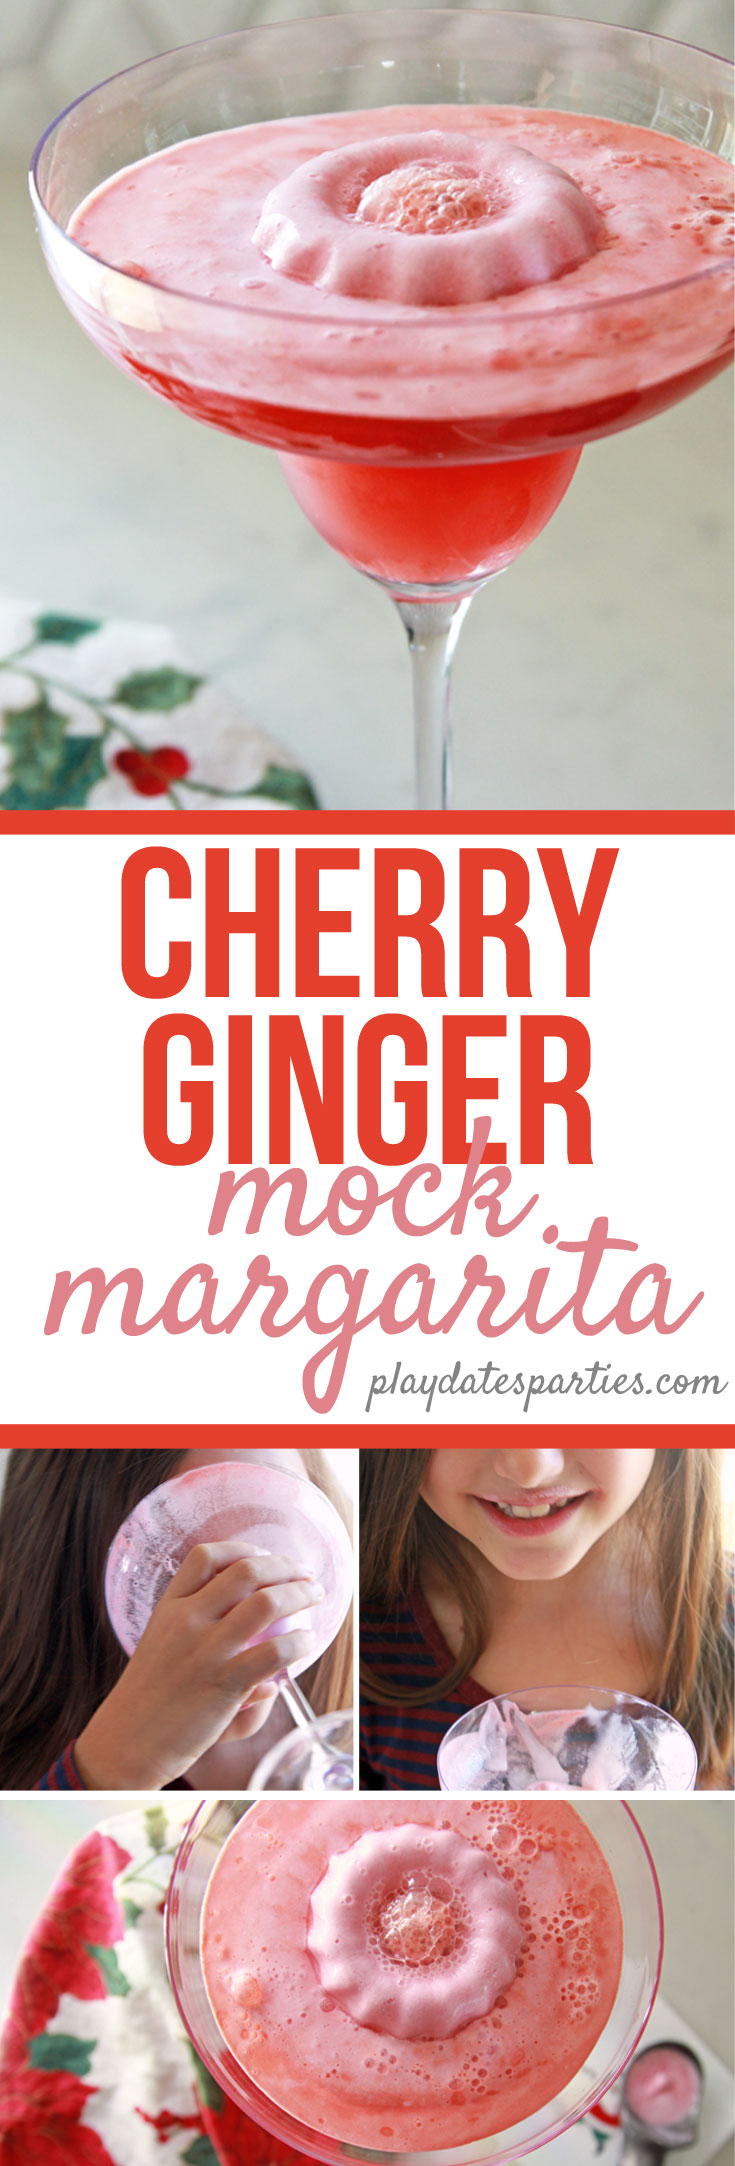 This cherry ginger mock margarita recipe is the perfect Christmas #party drink for #kids to enjoy. They'll love the bright color, fruity flavor, and sherbet wreath in the center of the drink. #virgin #cocktails